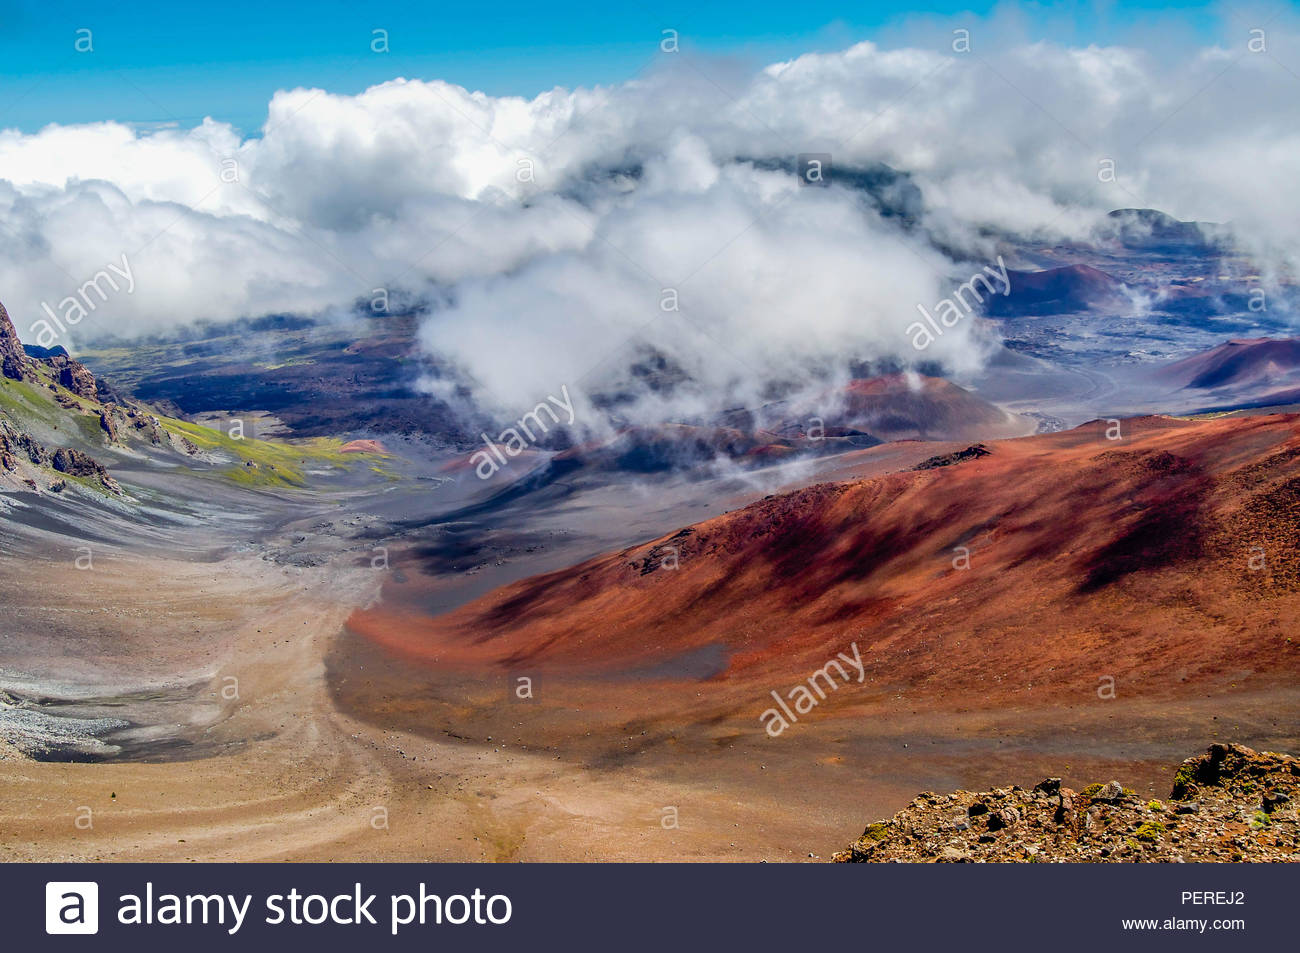 The Canvas of Colors Located in the Crater of Haleakala Volcano on the Island of Maui in Hawaii - Stock Image